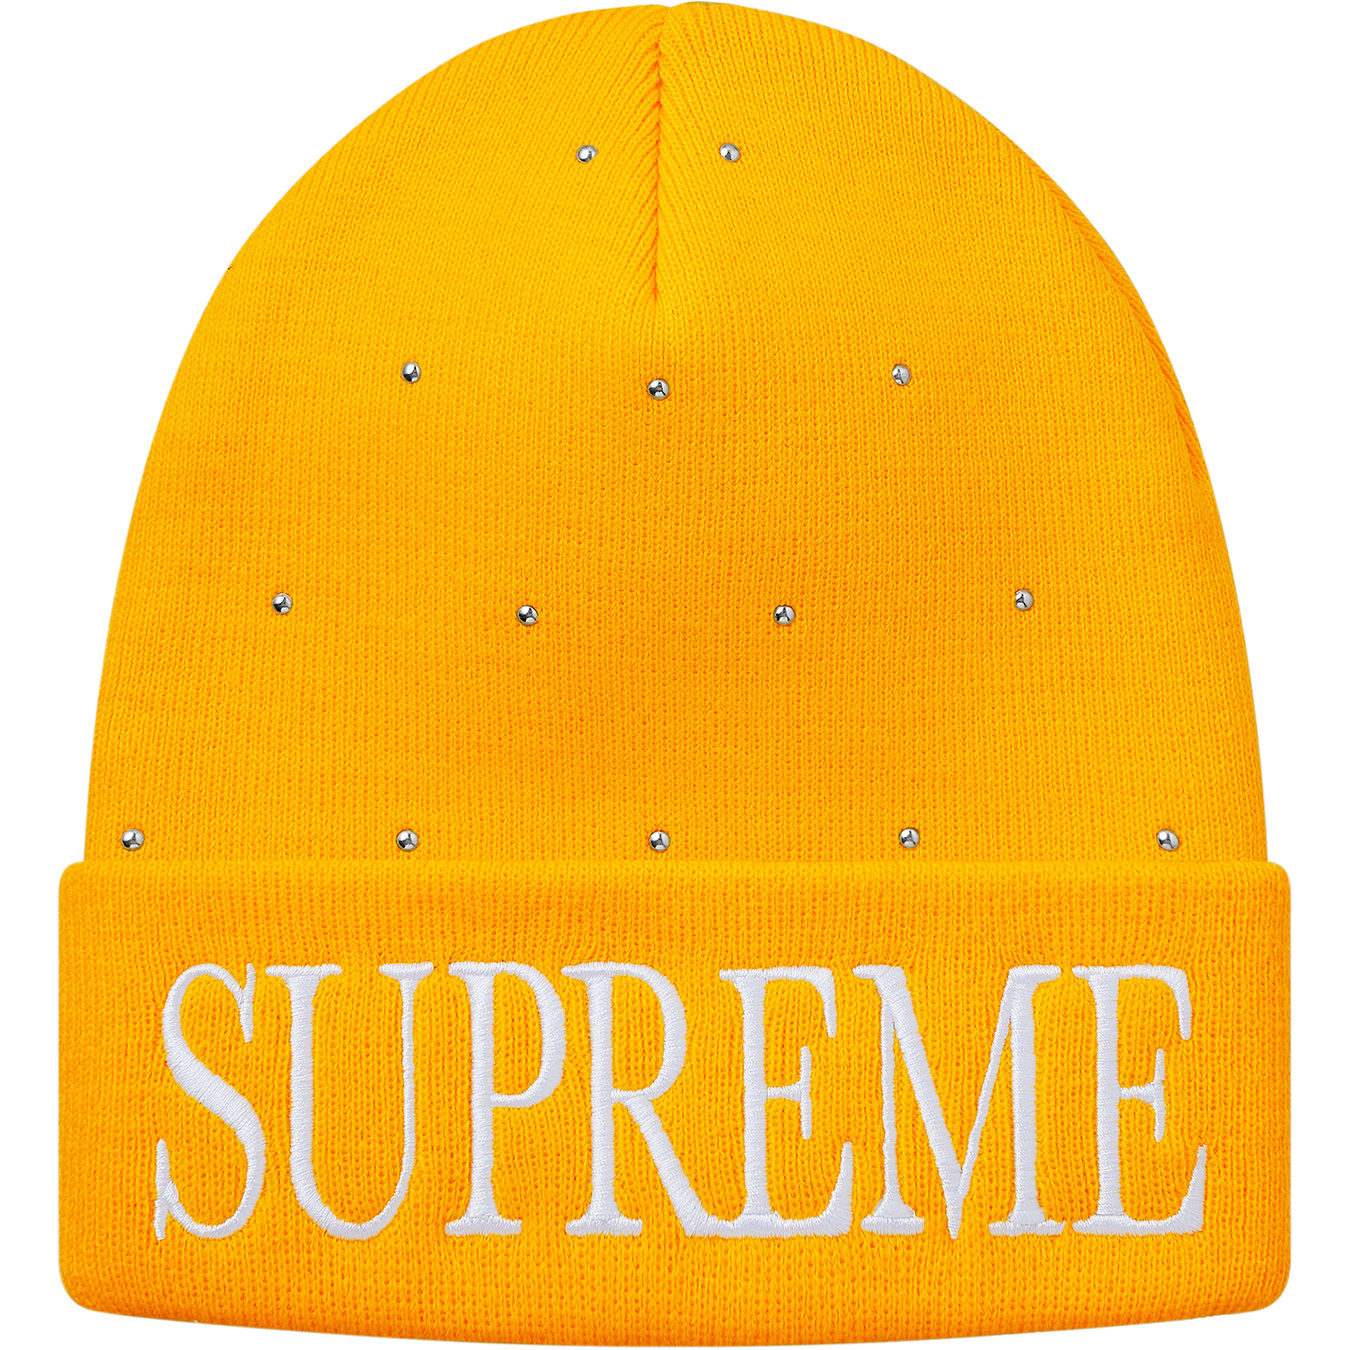 afe8f9f6 Supreme Studded Beanie Yellow | Novelship: Buy and Sell Sneakers,  Streetwear, 100% Authentic